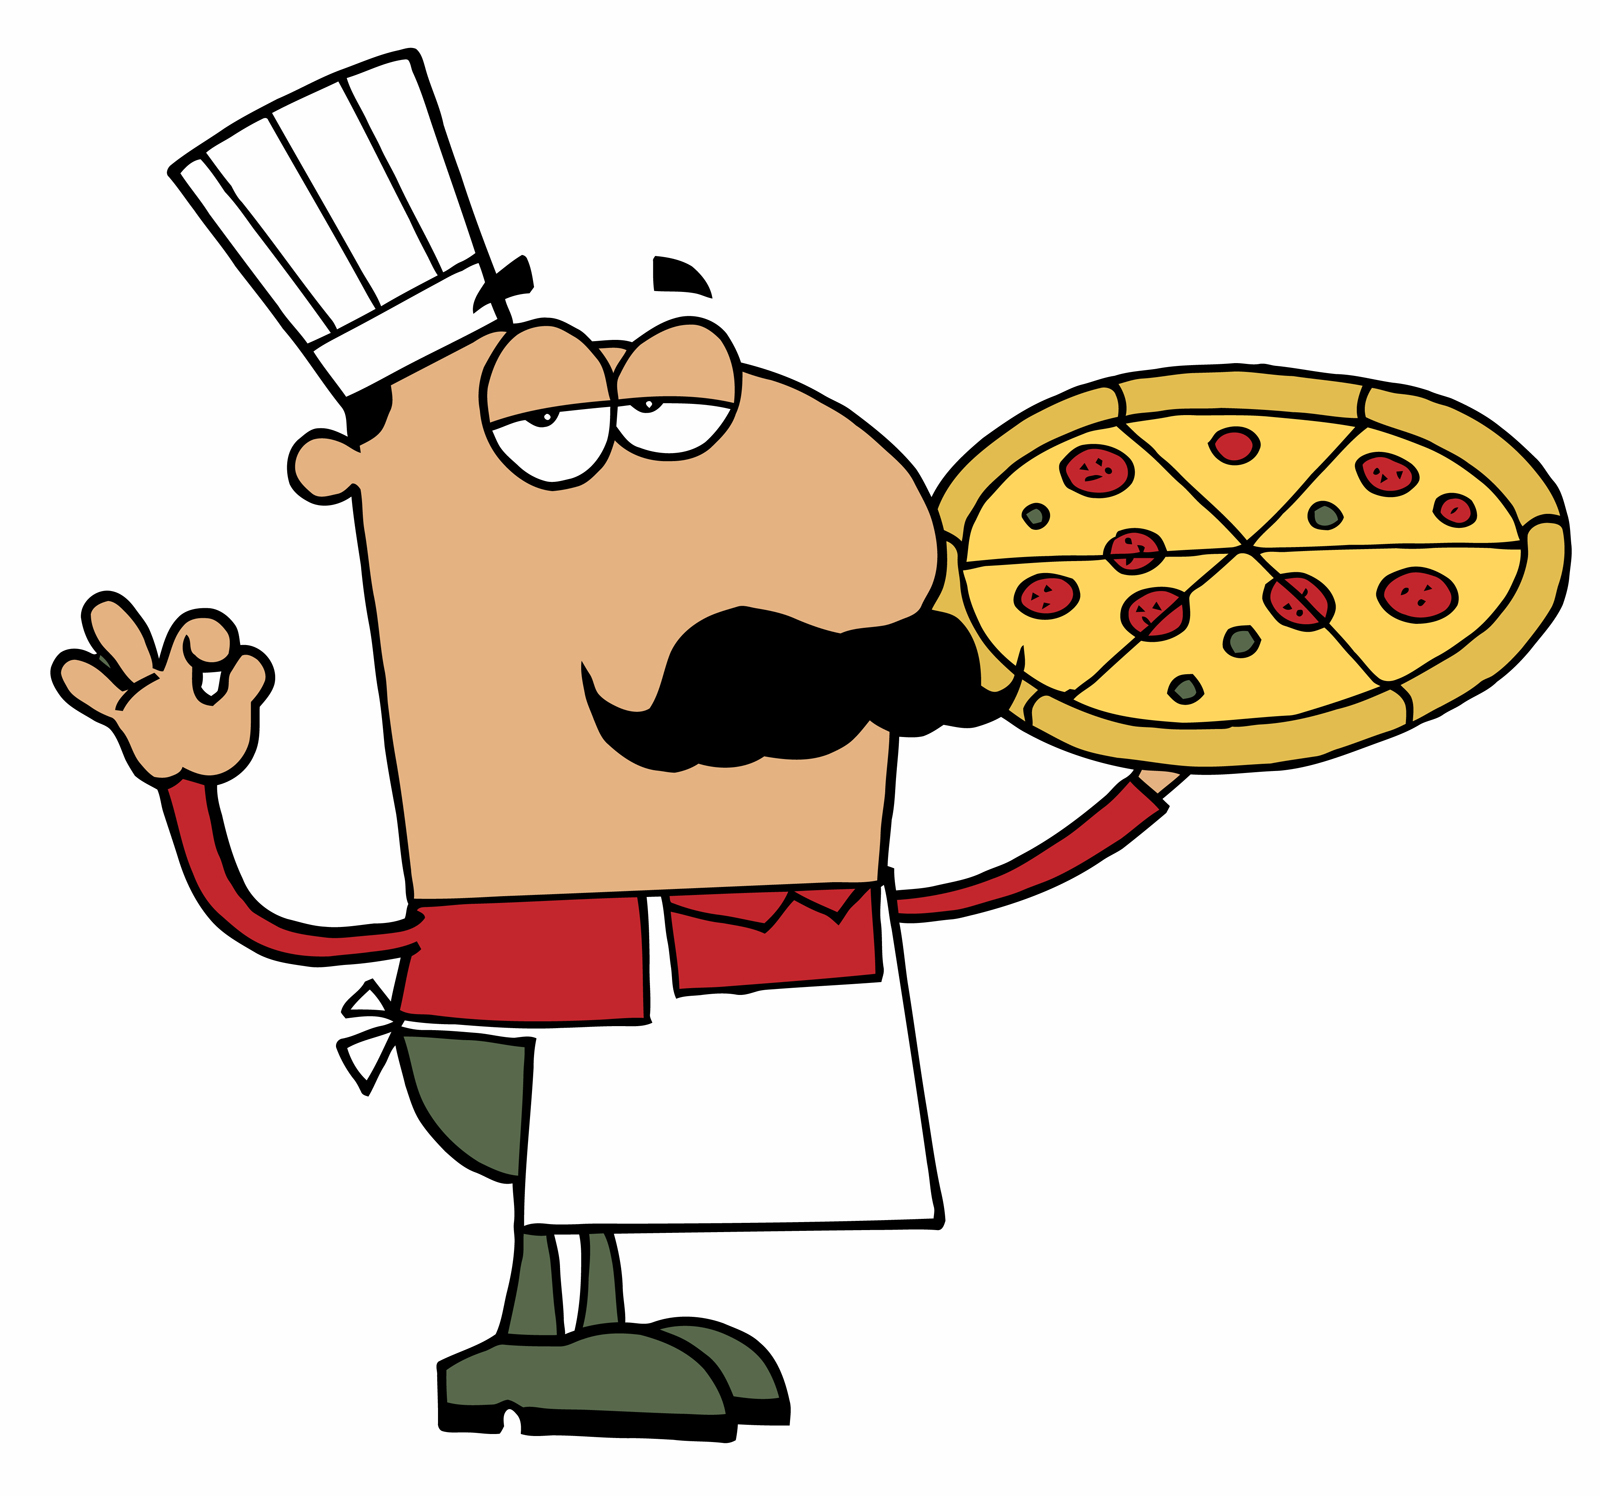 Moving clipart pizza ClipartMonk clipart Category: Free Images